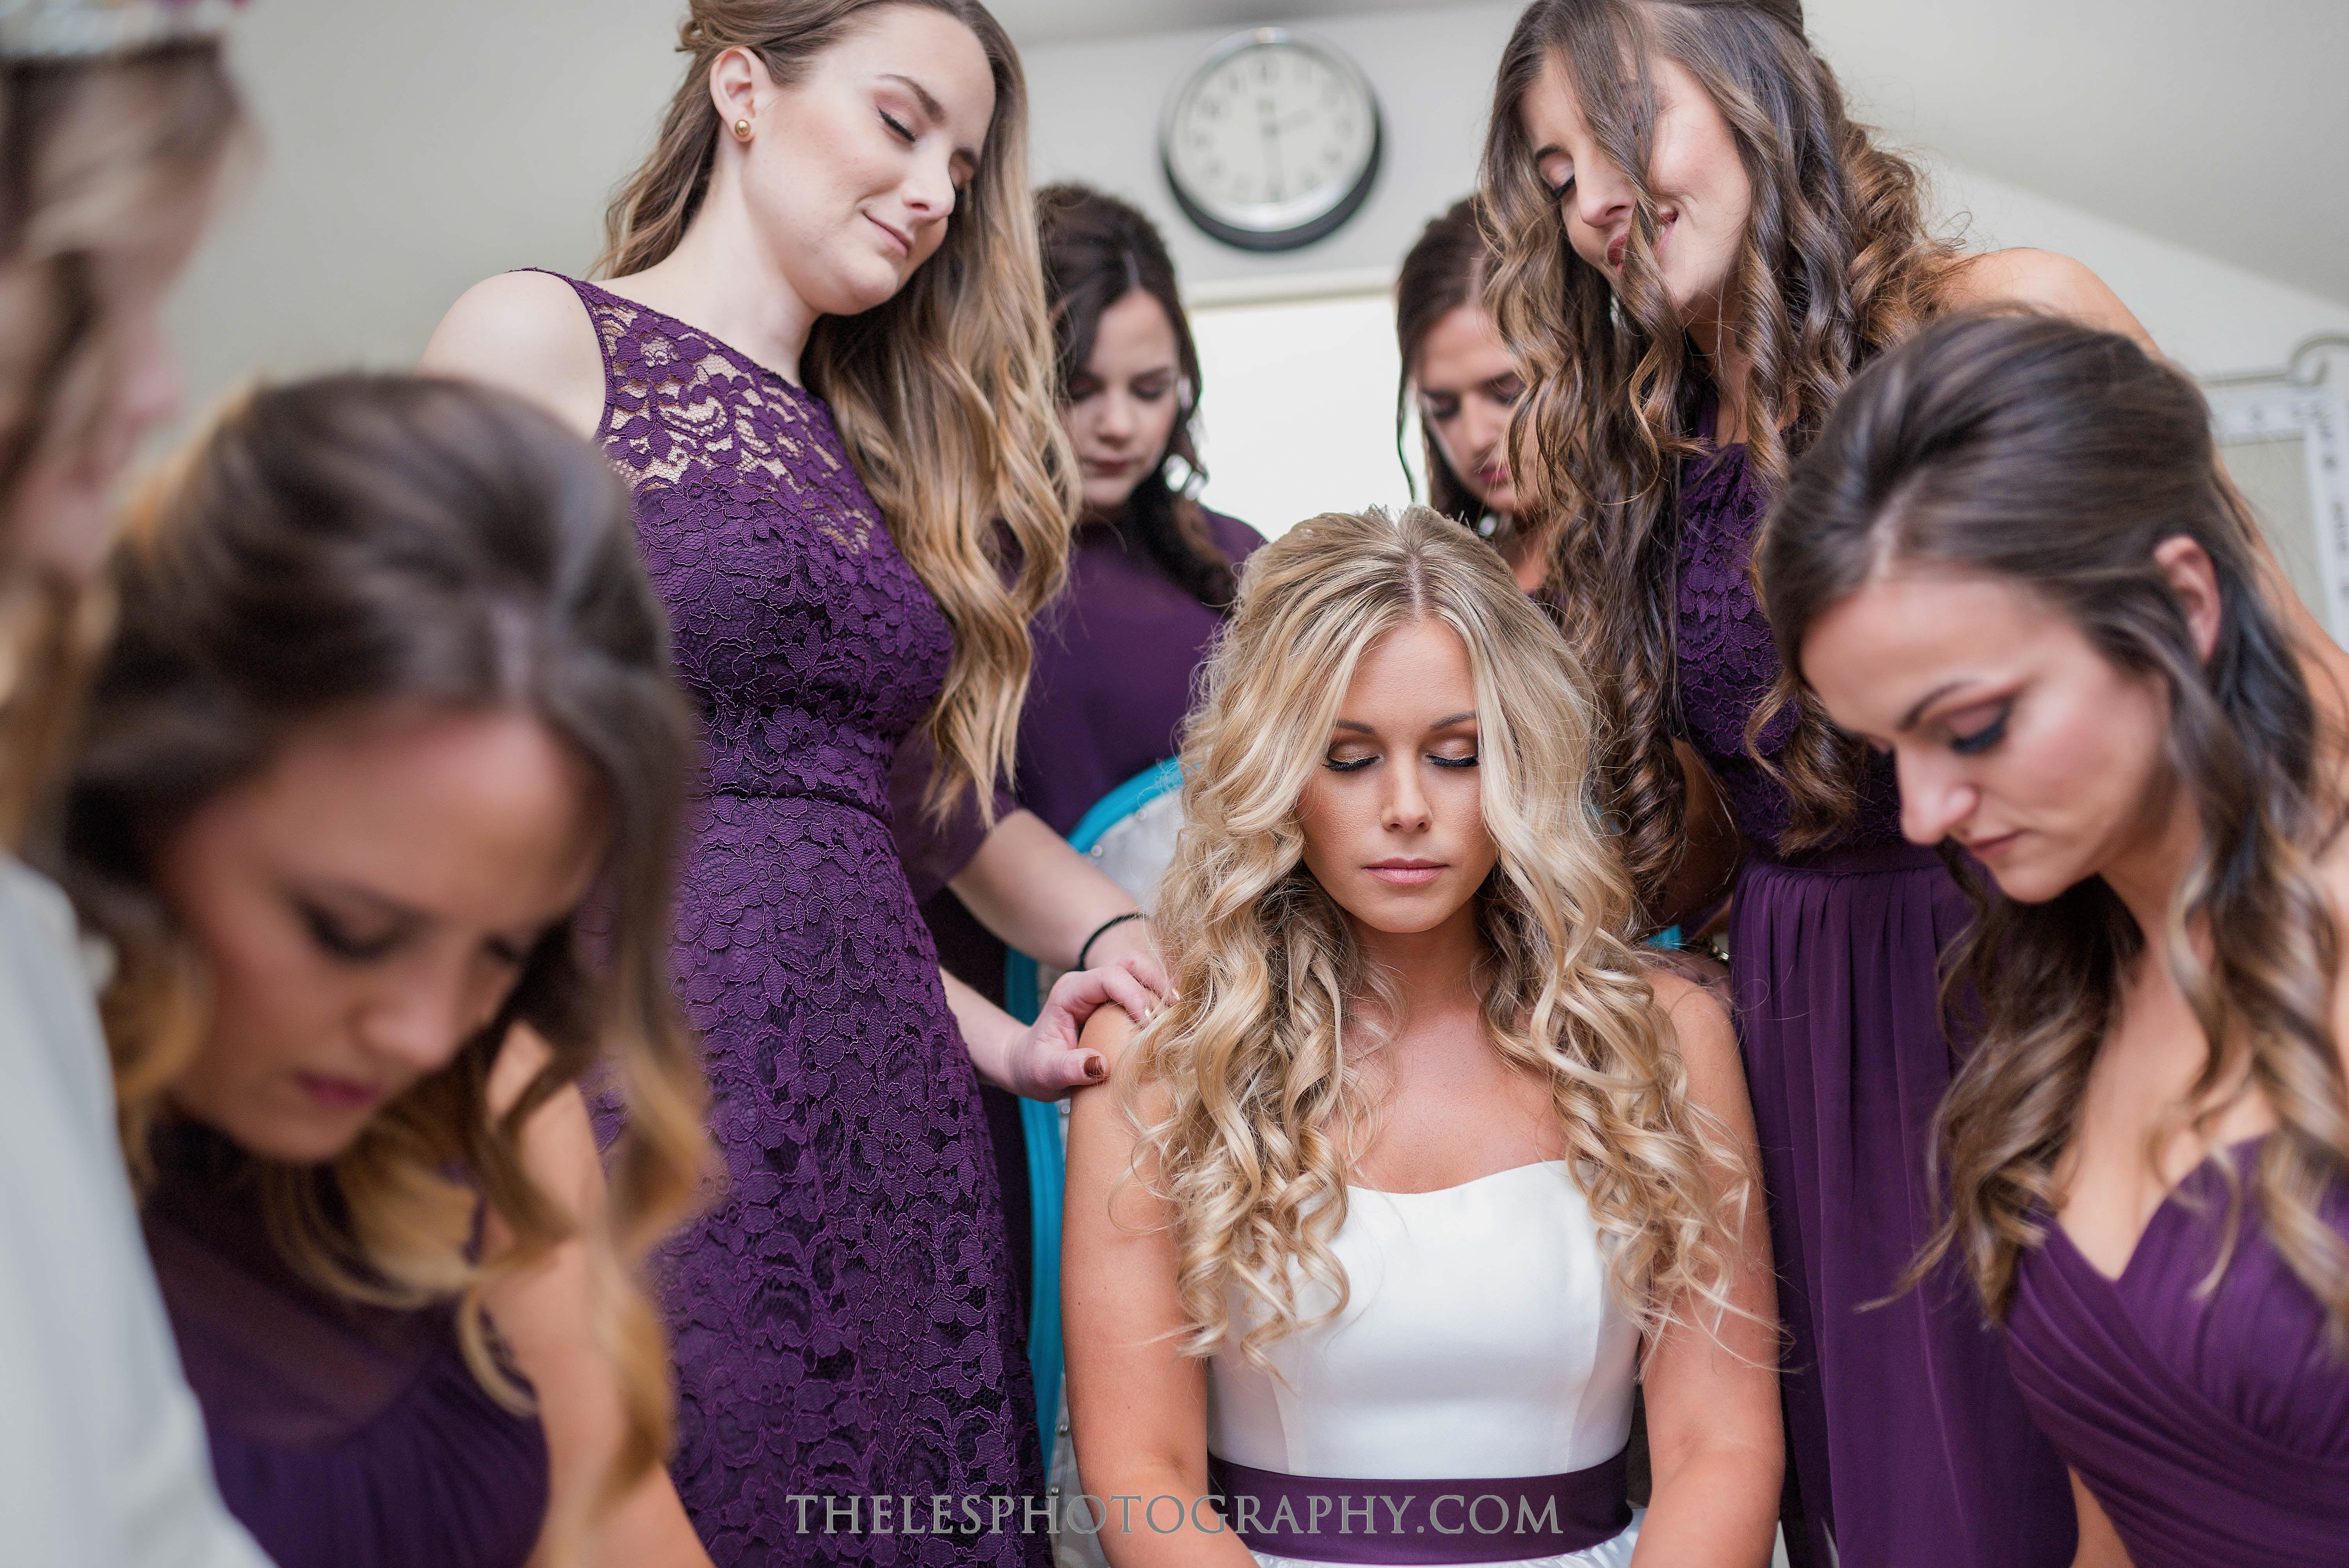 023 Dallas Wedding Photography - Photographer - The Les Photography - Fort Country Memories Wedding